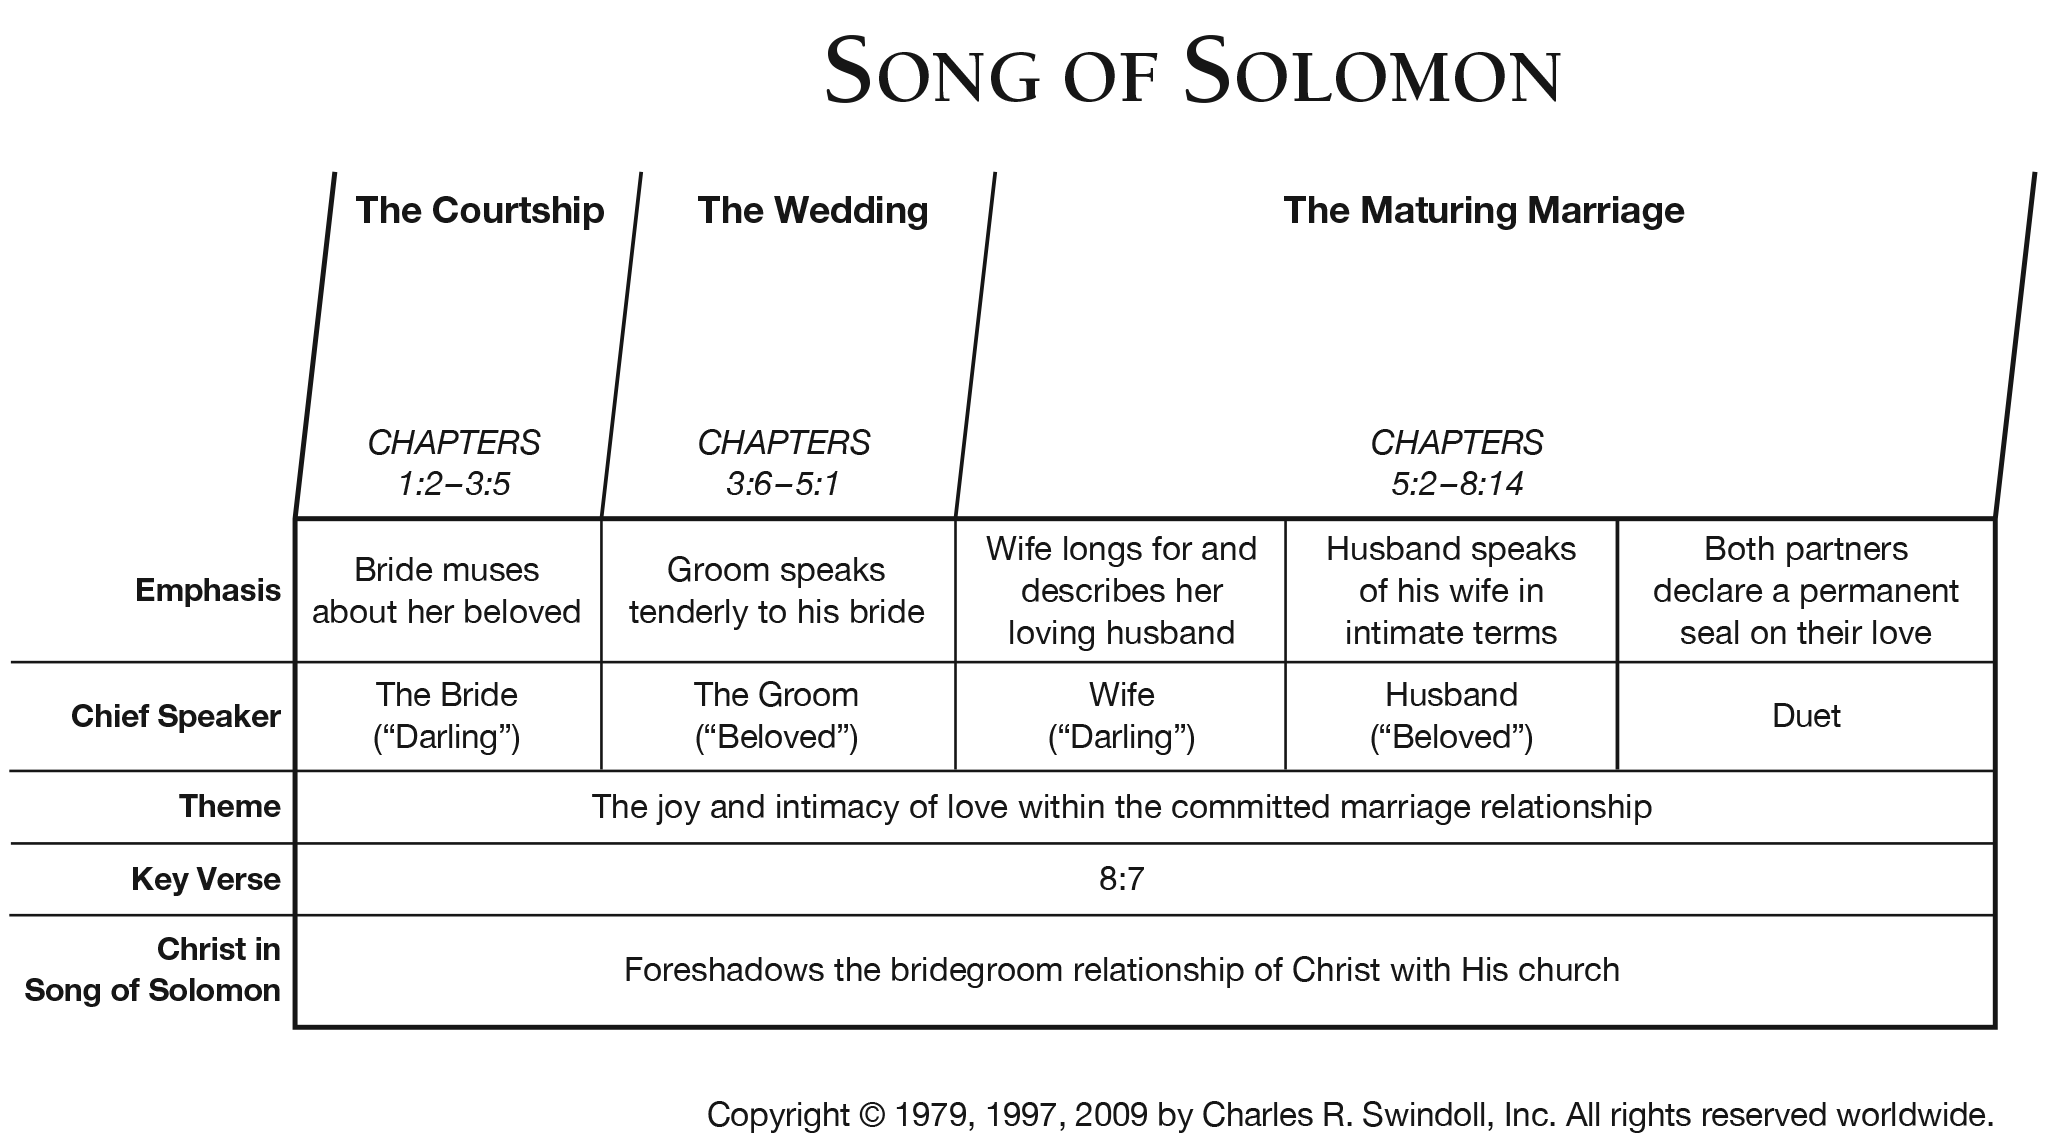 Book of Song of Solomon Overview - Insight for Living Ministries